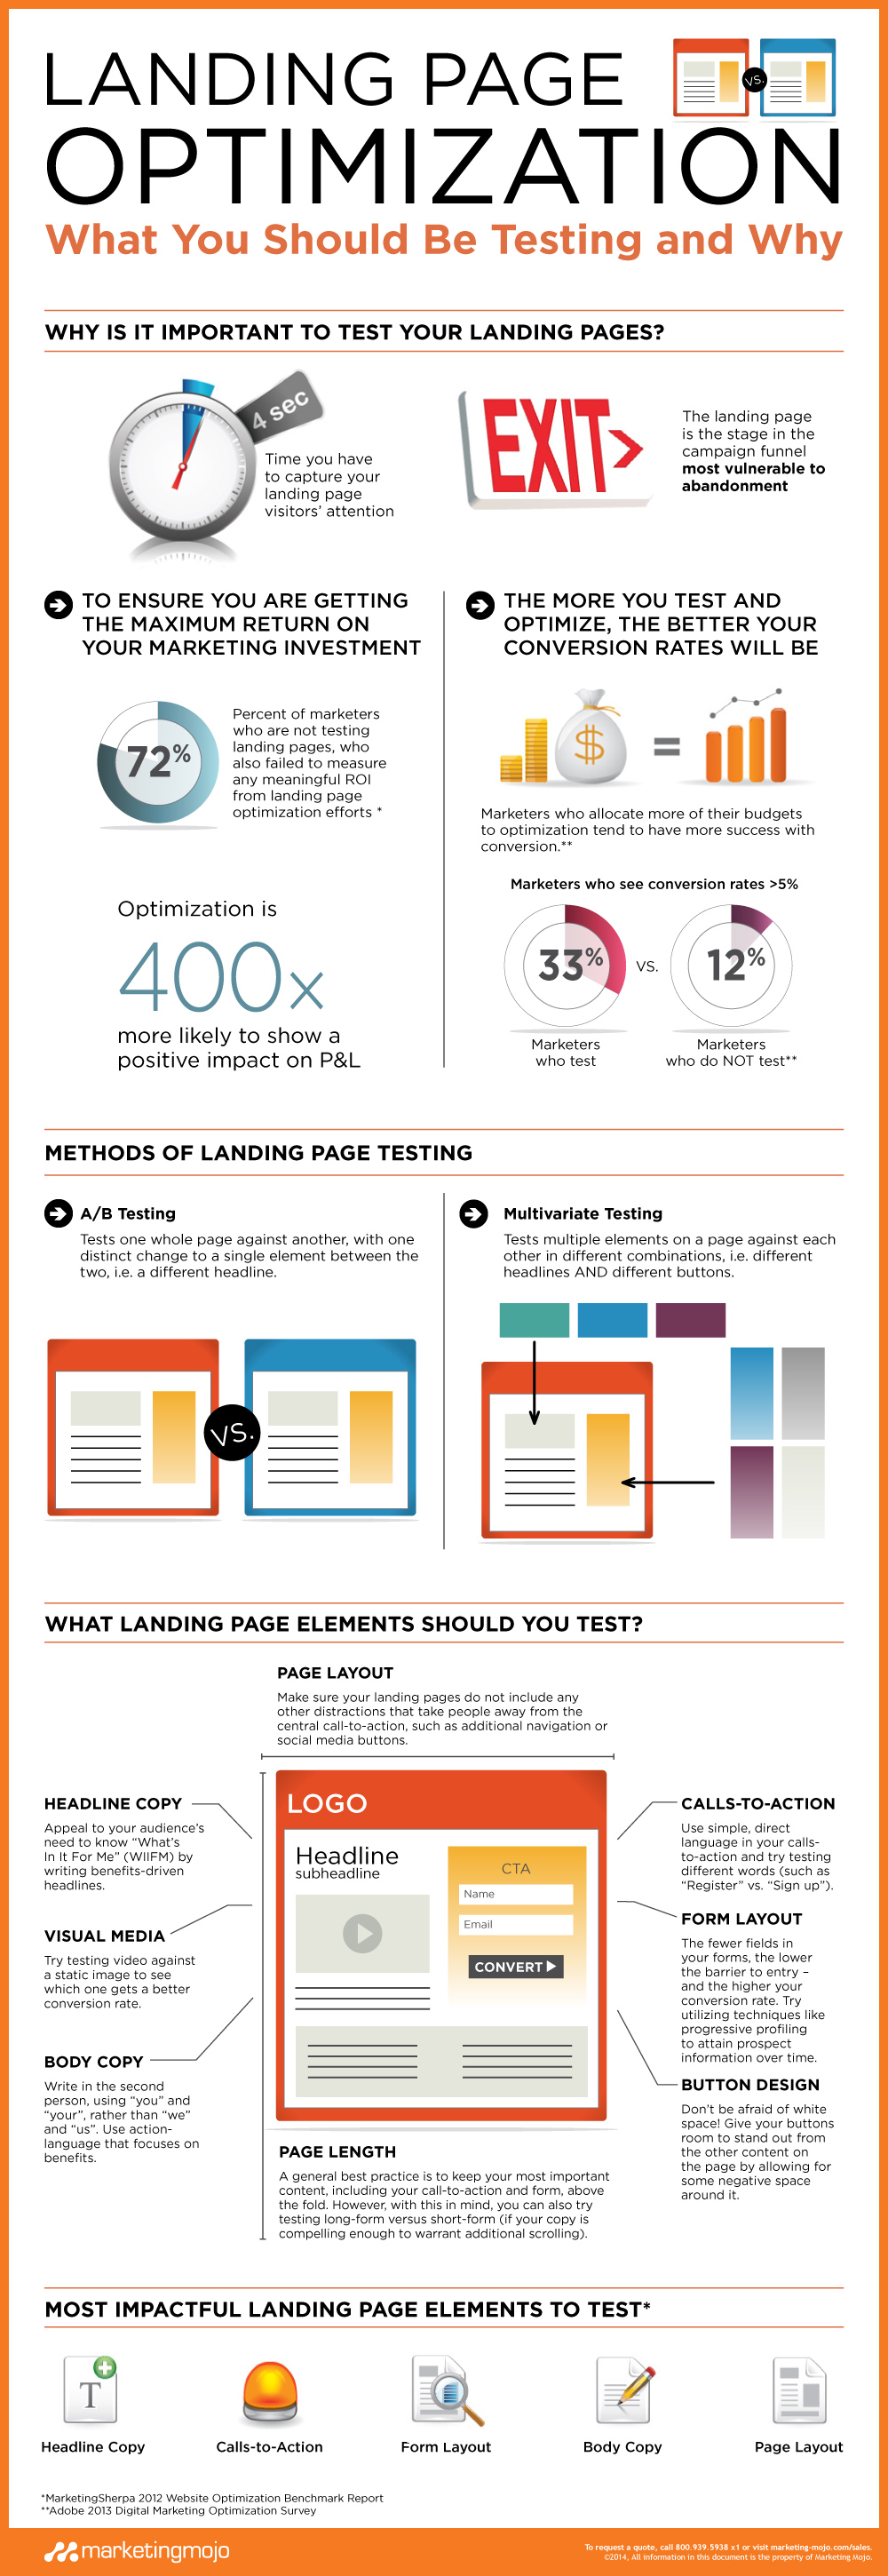 Landing Page Optimization: What You Should Be Testing and Why from Marketing Mojo